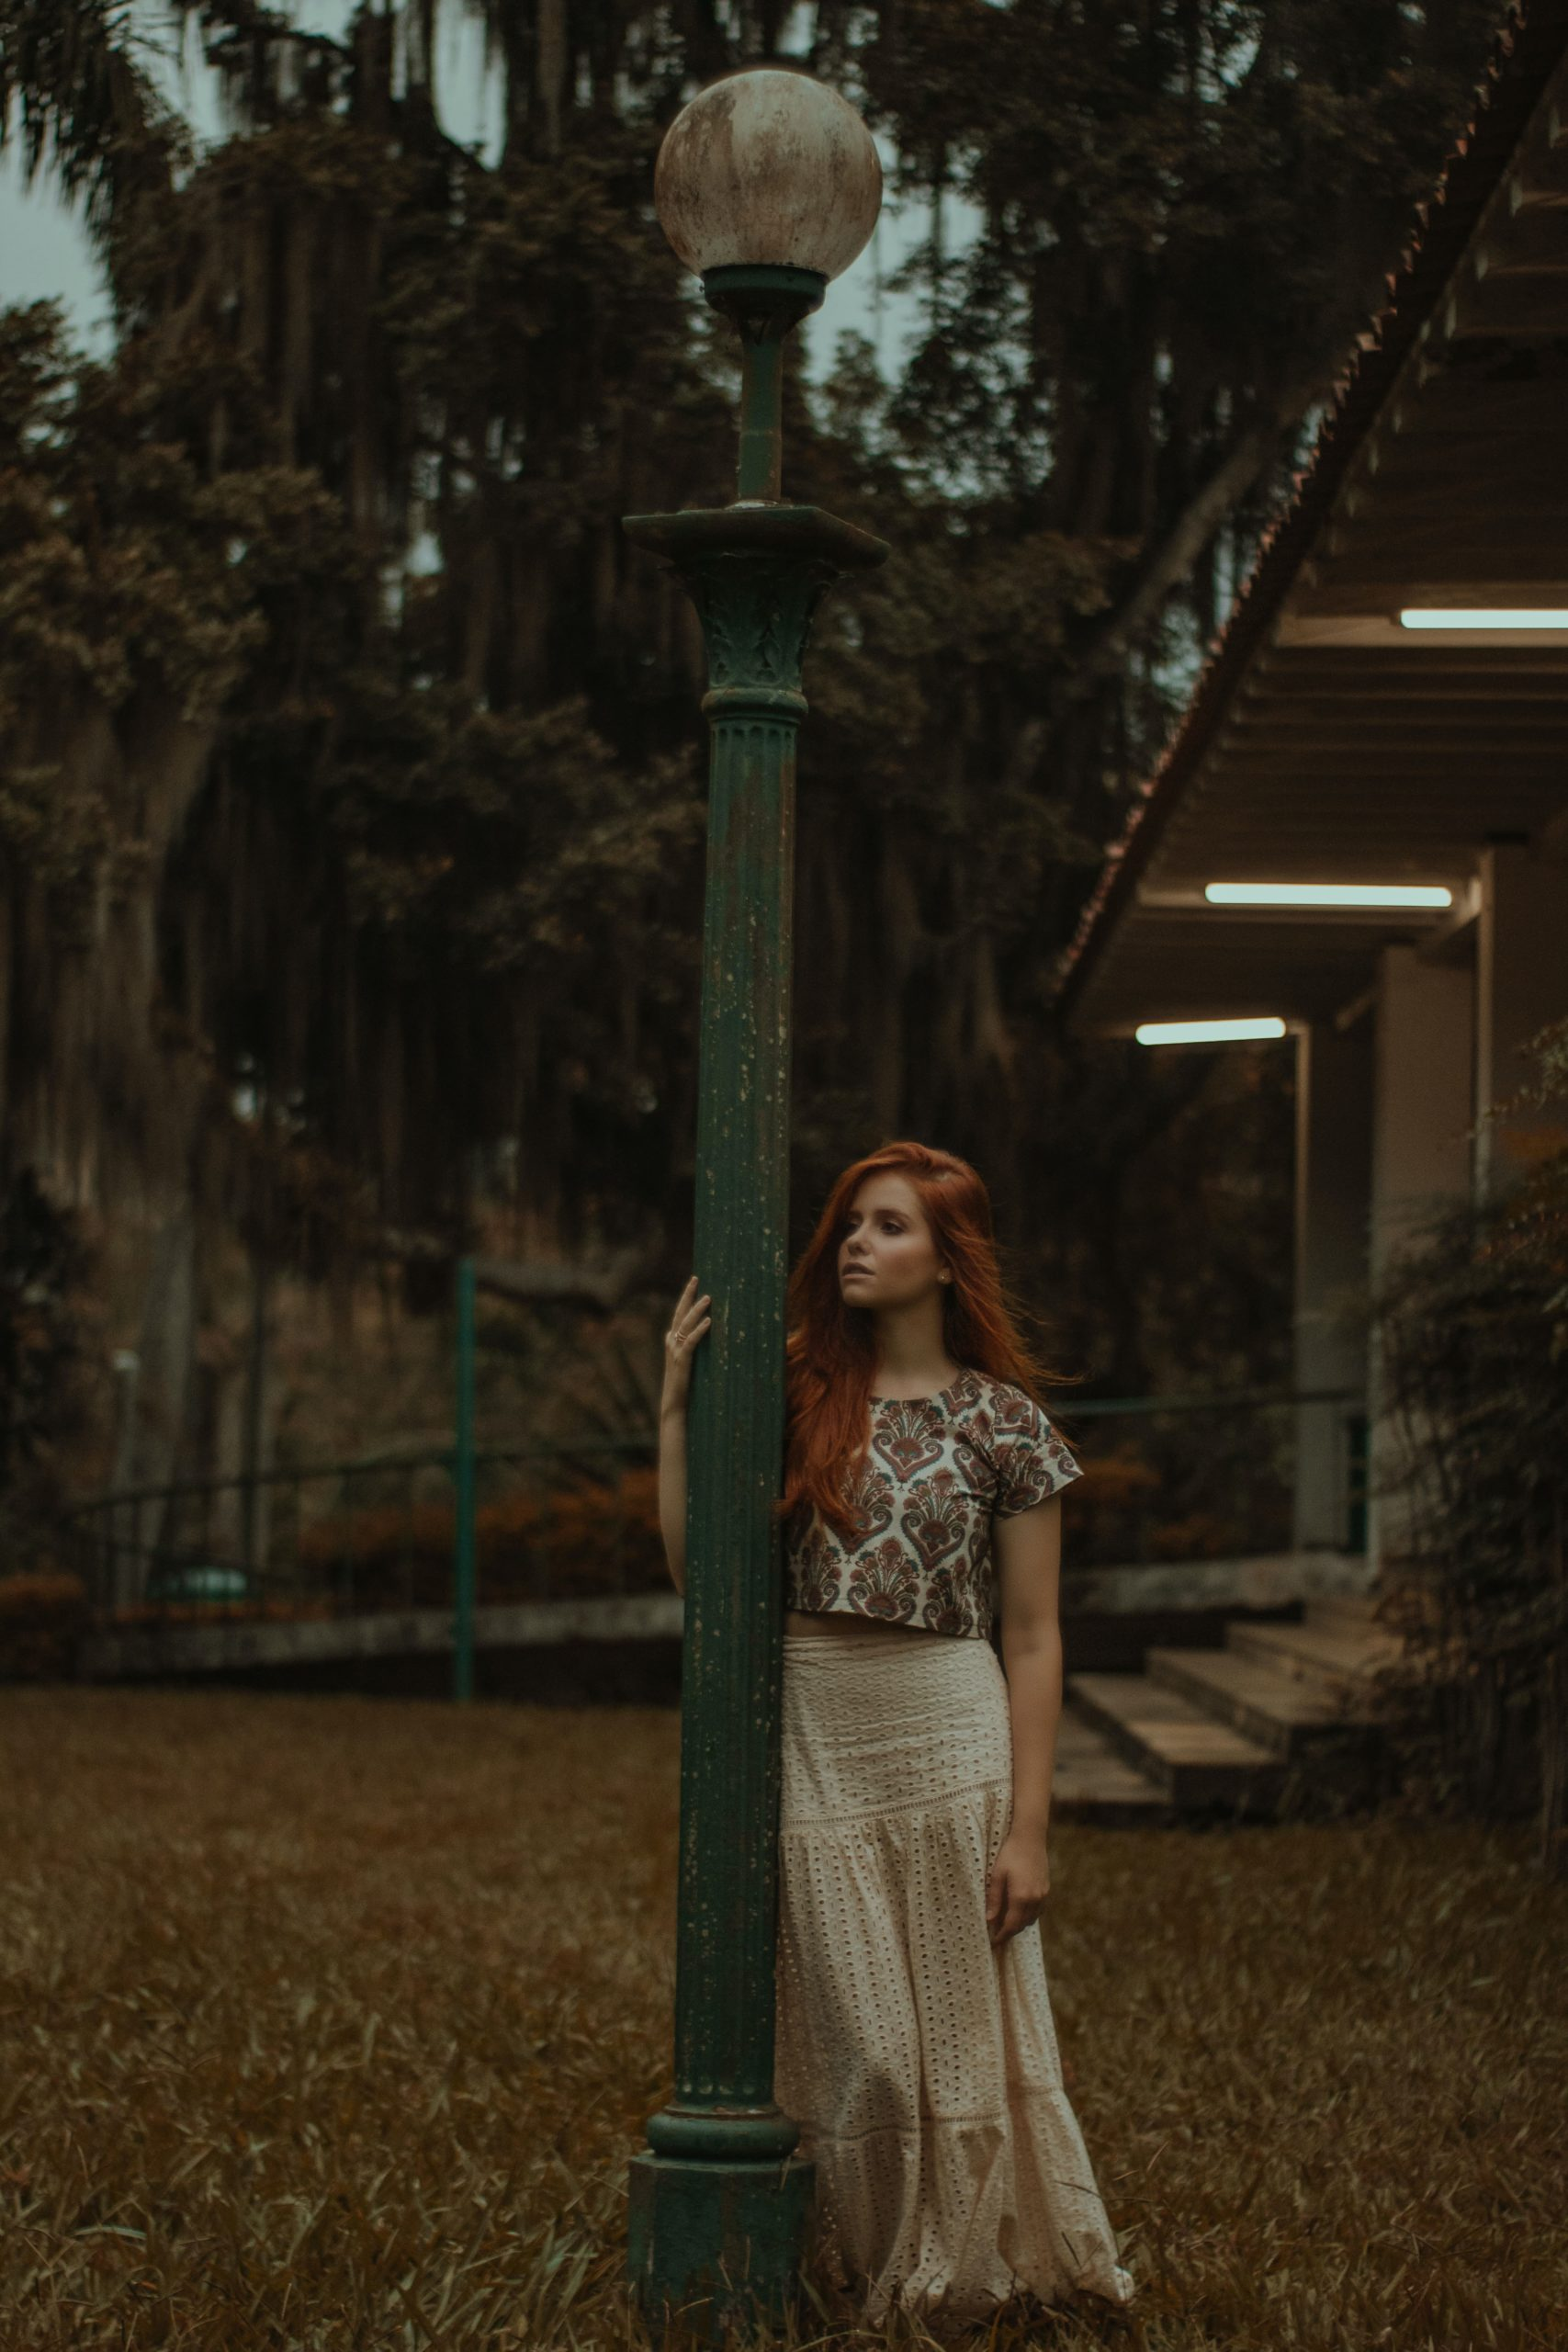 red head wearing boho outfit